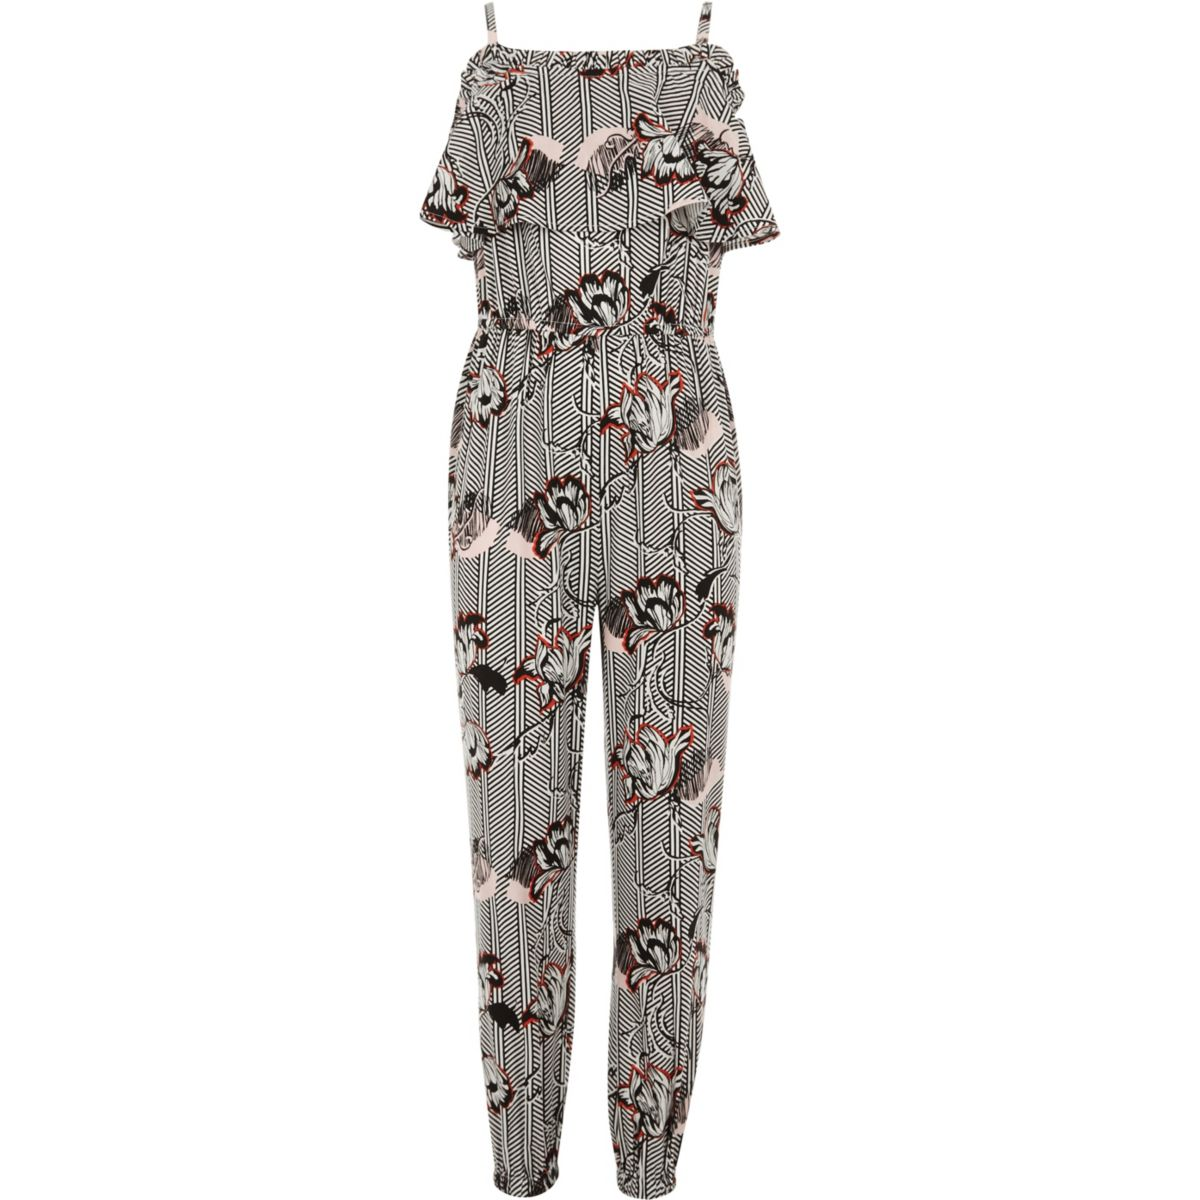 Girls white floral print ruffle jumpsuit